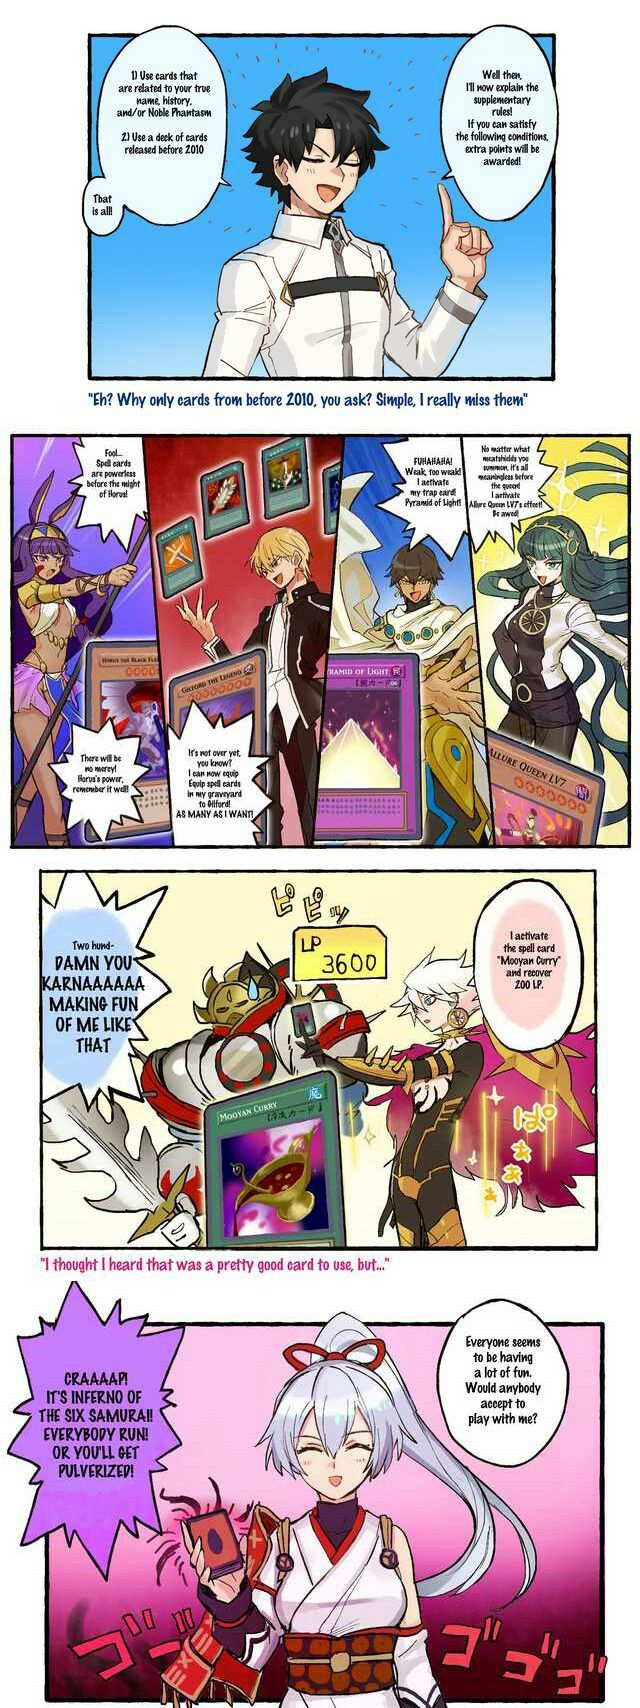 2010 Cards Yugioh Tbh Fate Stay Night Anime Fate Anime Series Fate Stay Night